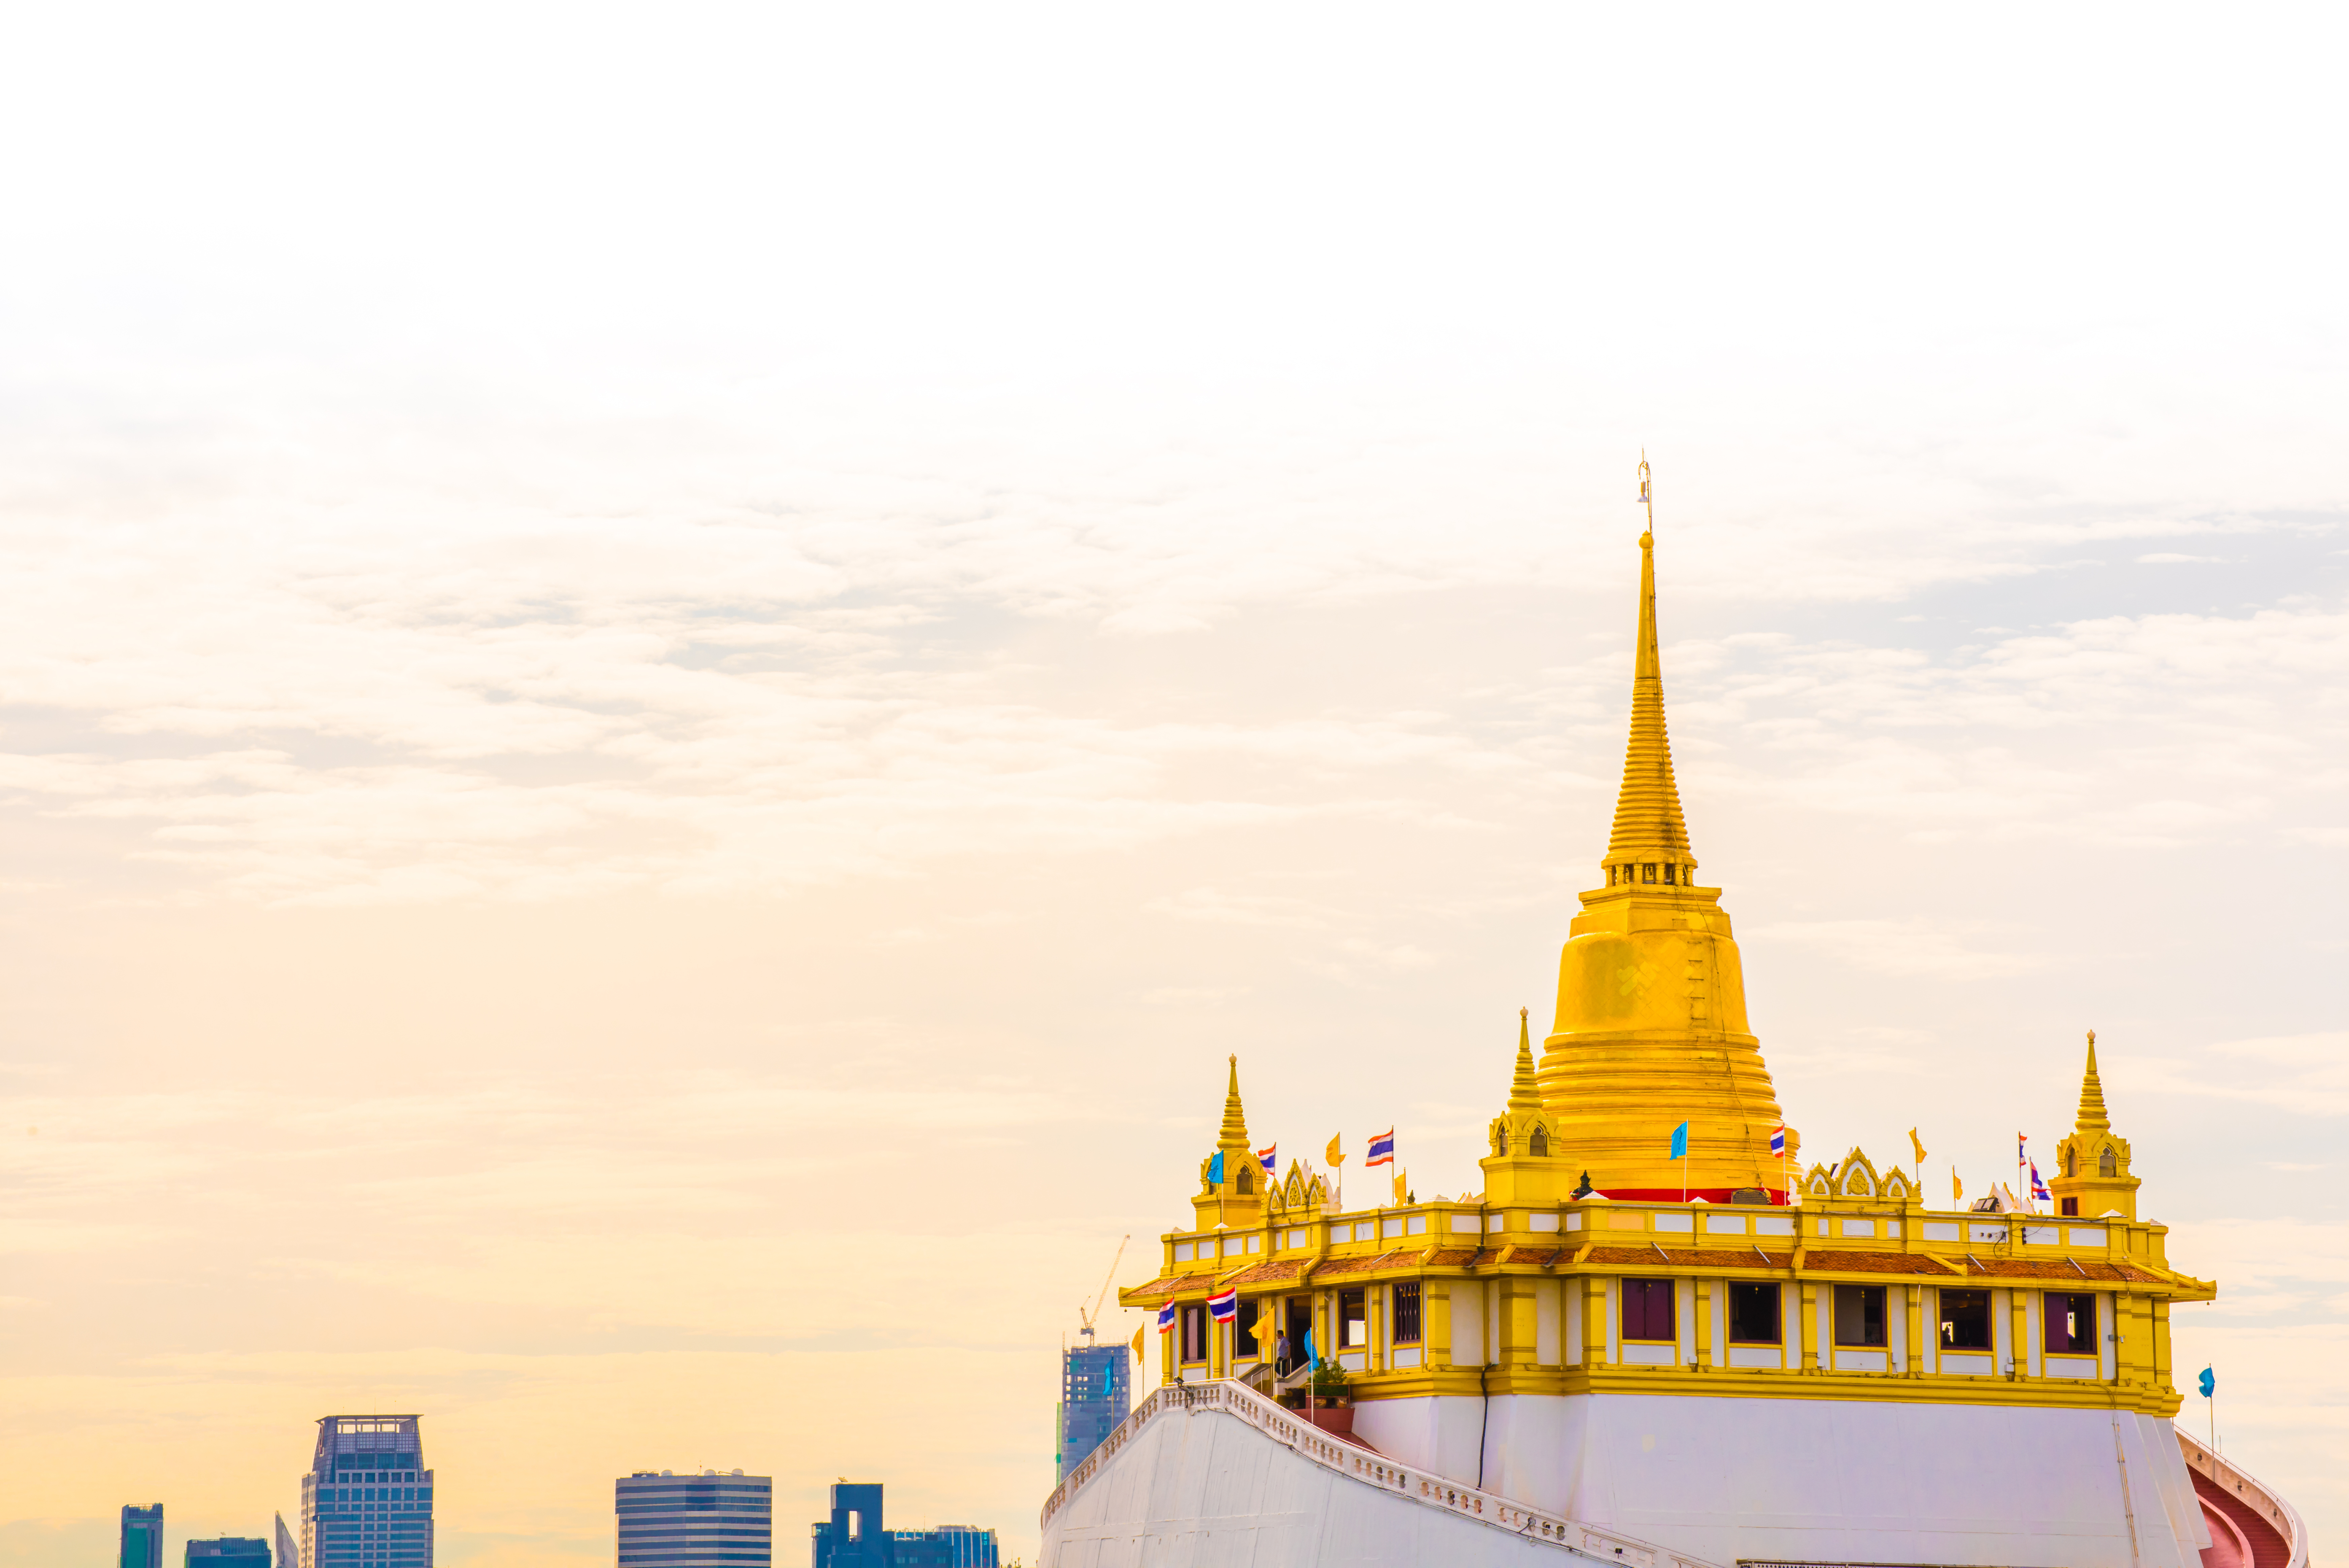 Golden Mount | Bangkok, Thailand Attractions - Lonely Planet